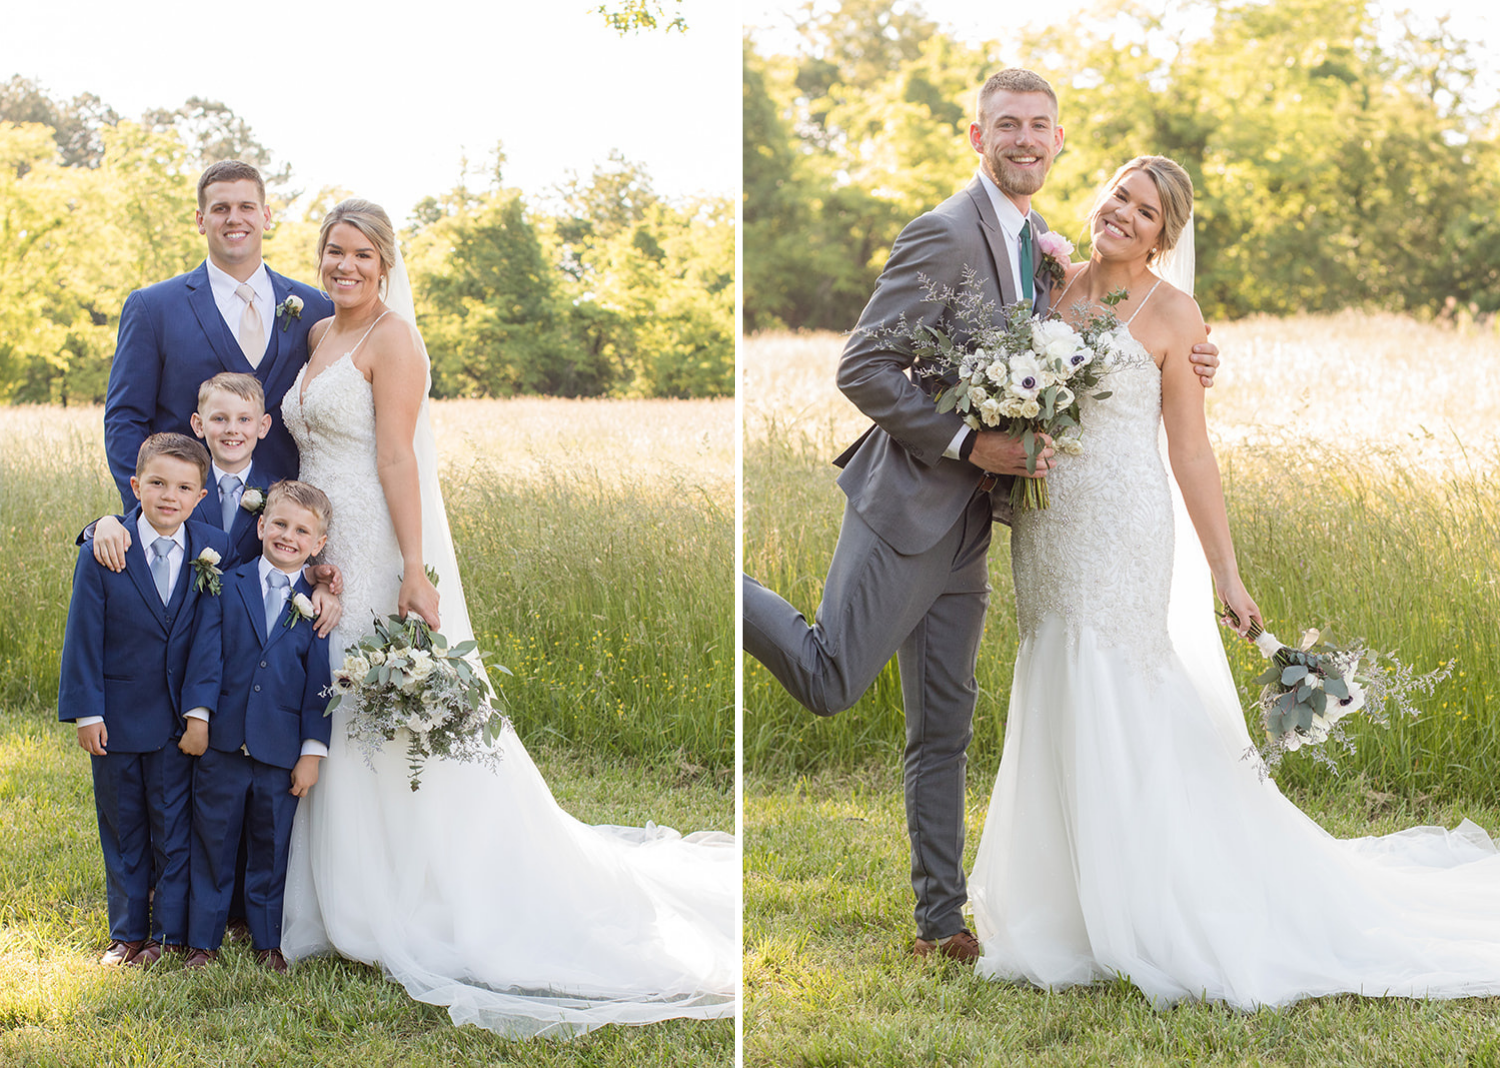 bride and groom with their kids and then the bride poses with their flower man